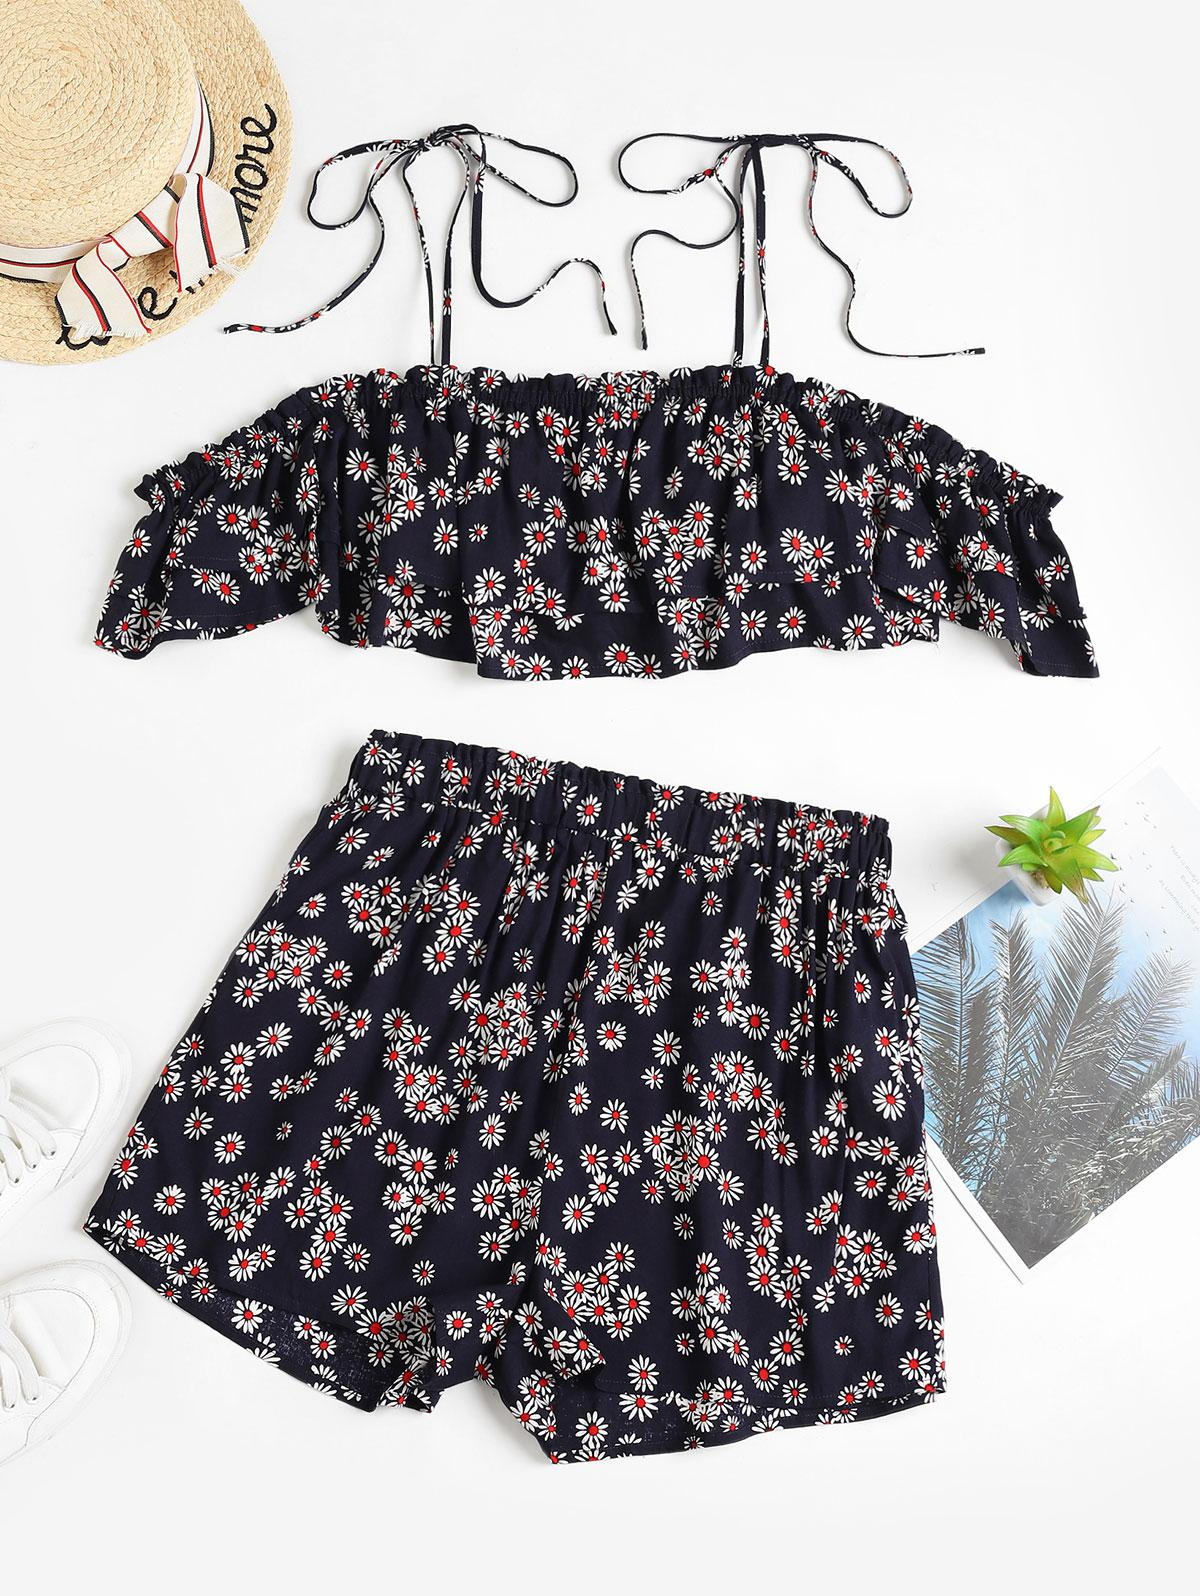 ZAFUL Floral Print Self Tie Cropped Top And Shorts Set фото